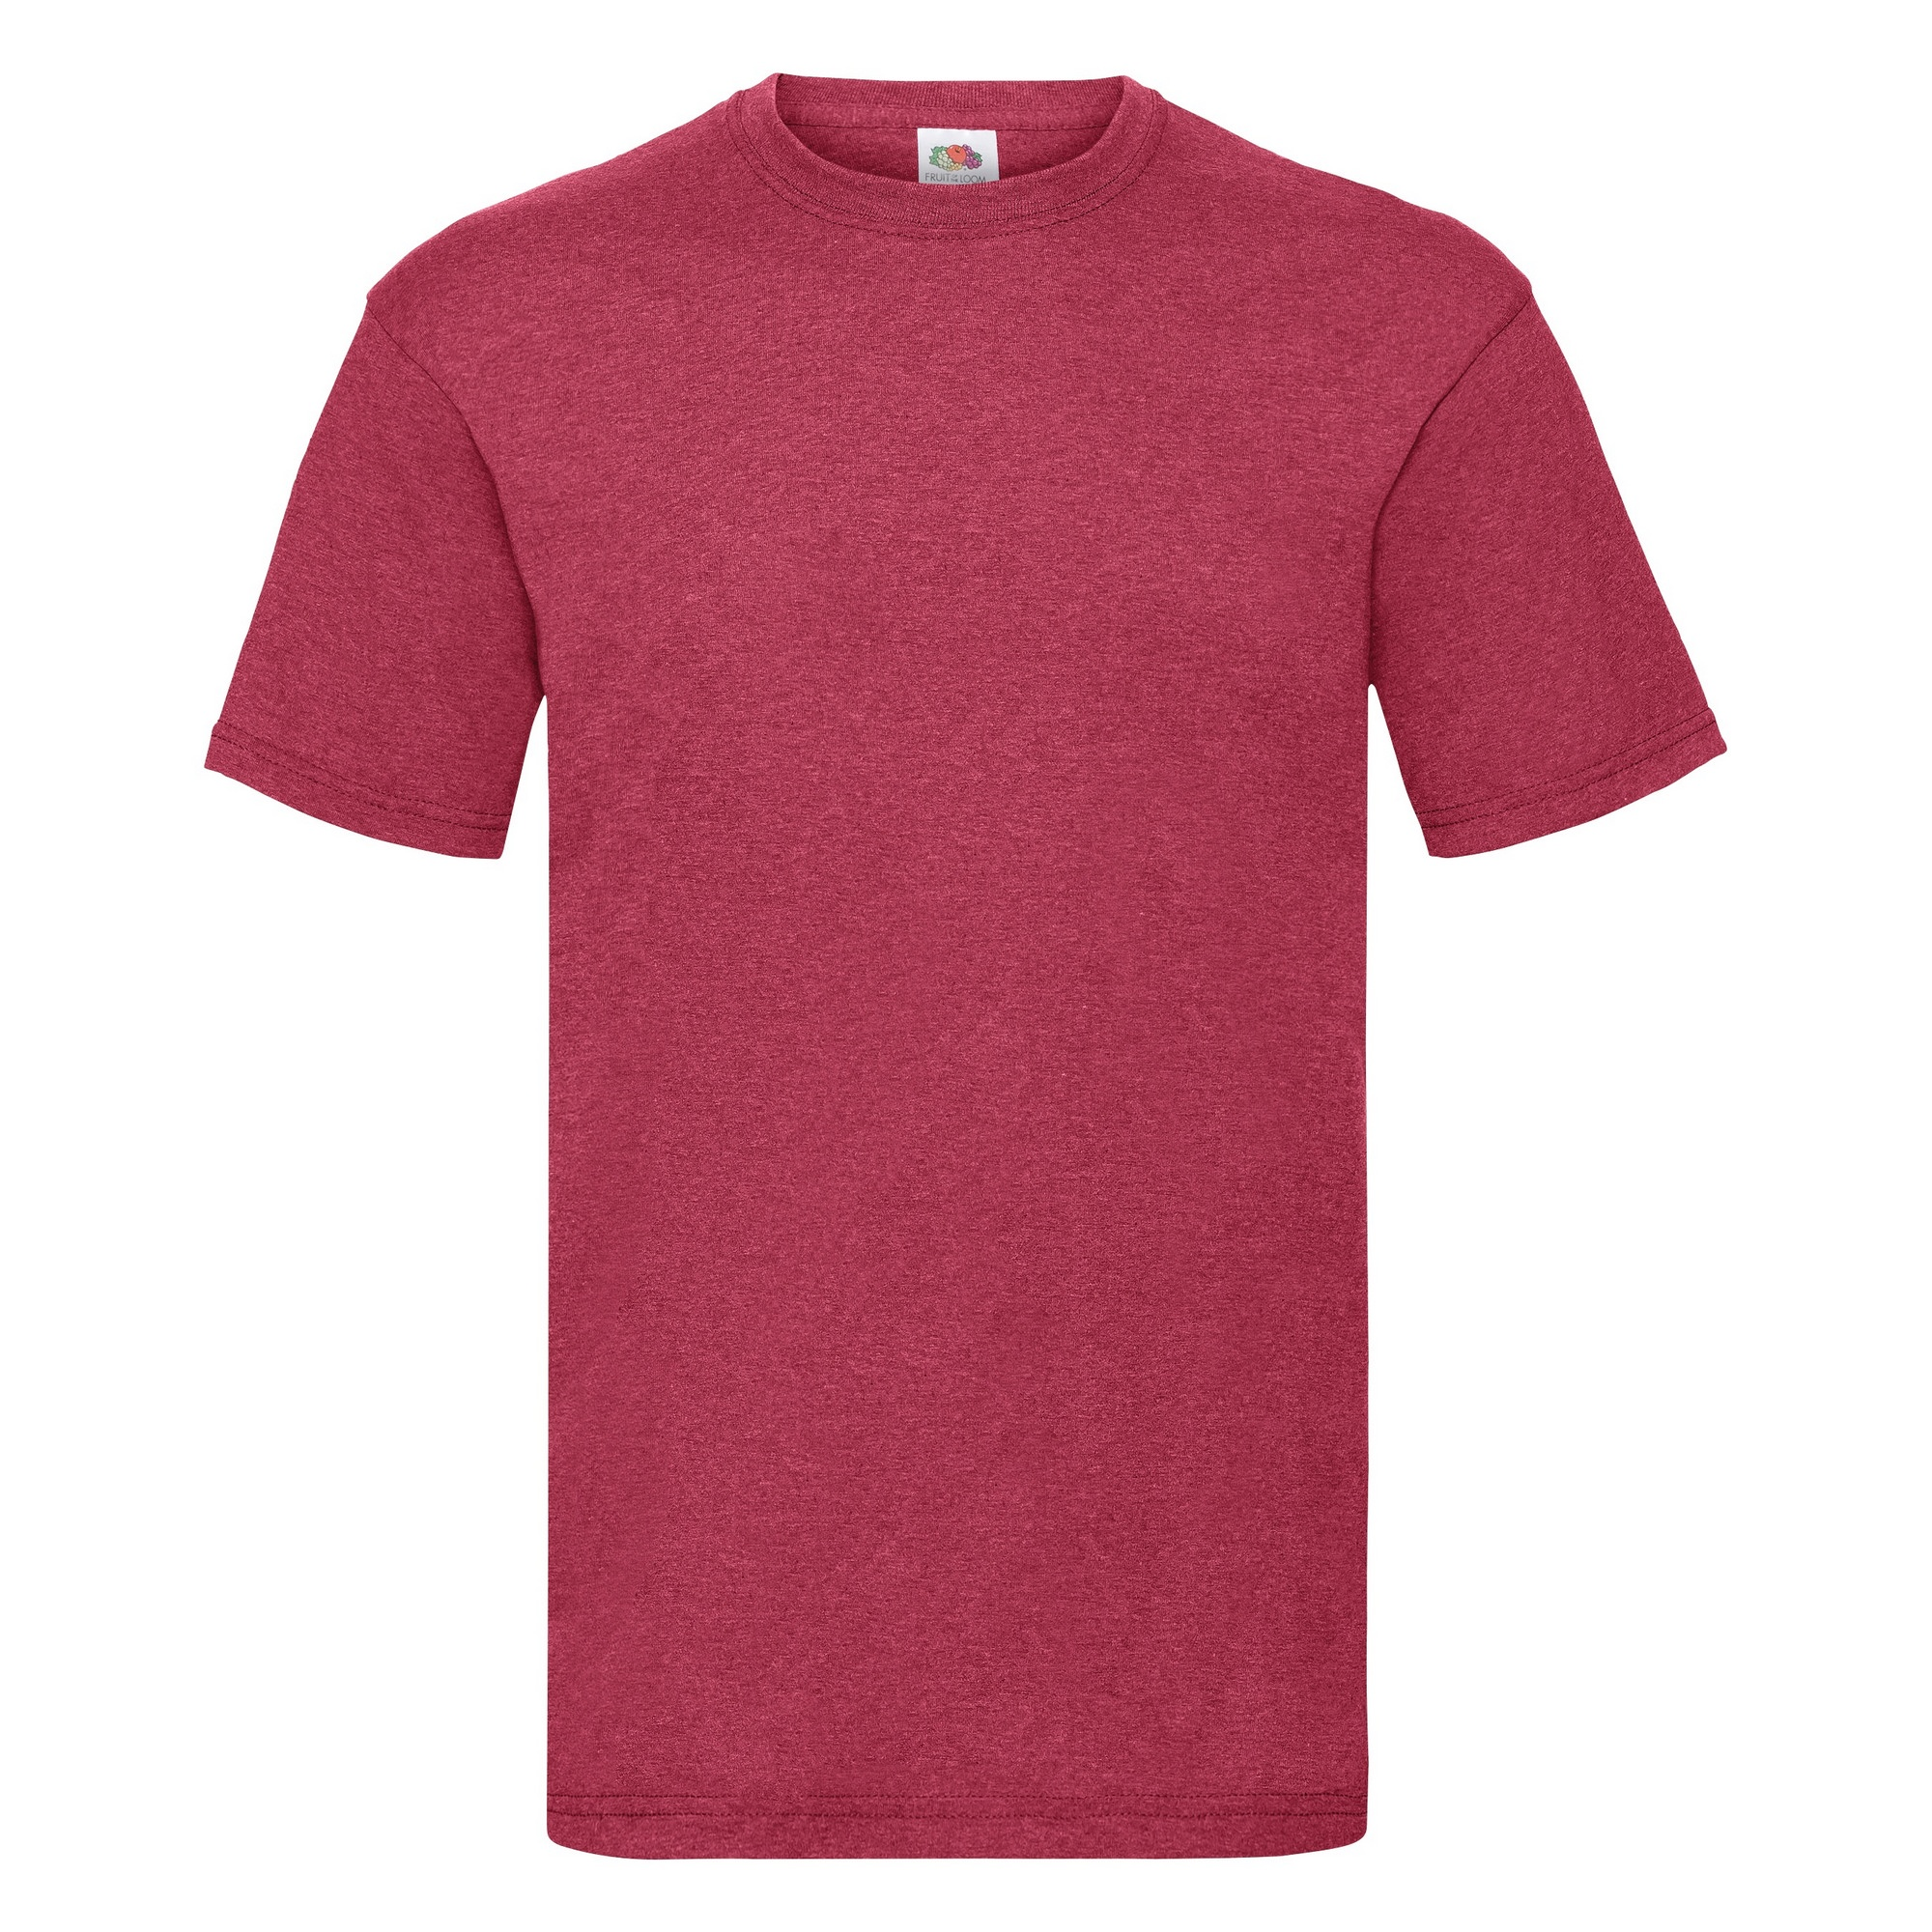 fruit of the loom mens valueweight short sleeve t shirt bc330 ebay. Black Bedroom Furniture Sets. Home Design Ideas